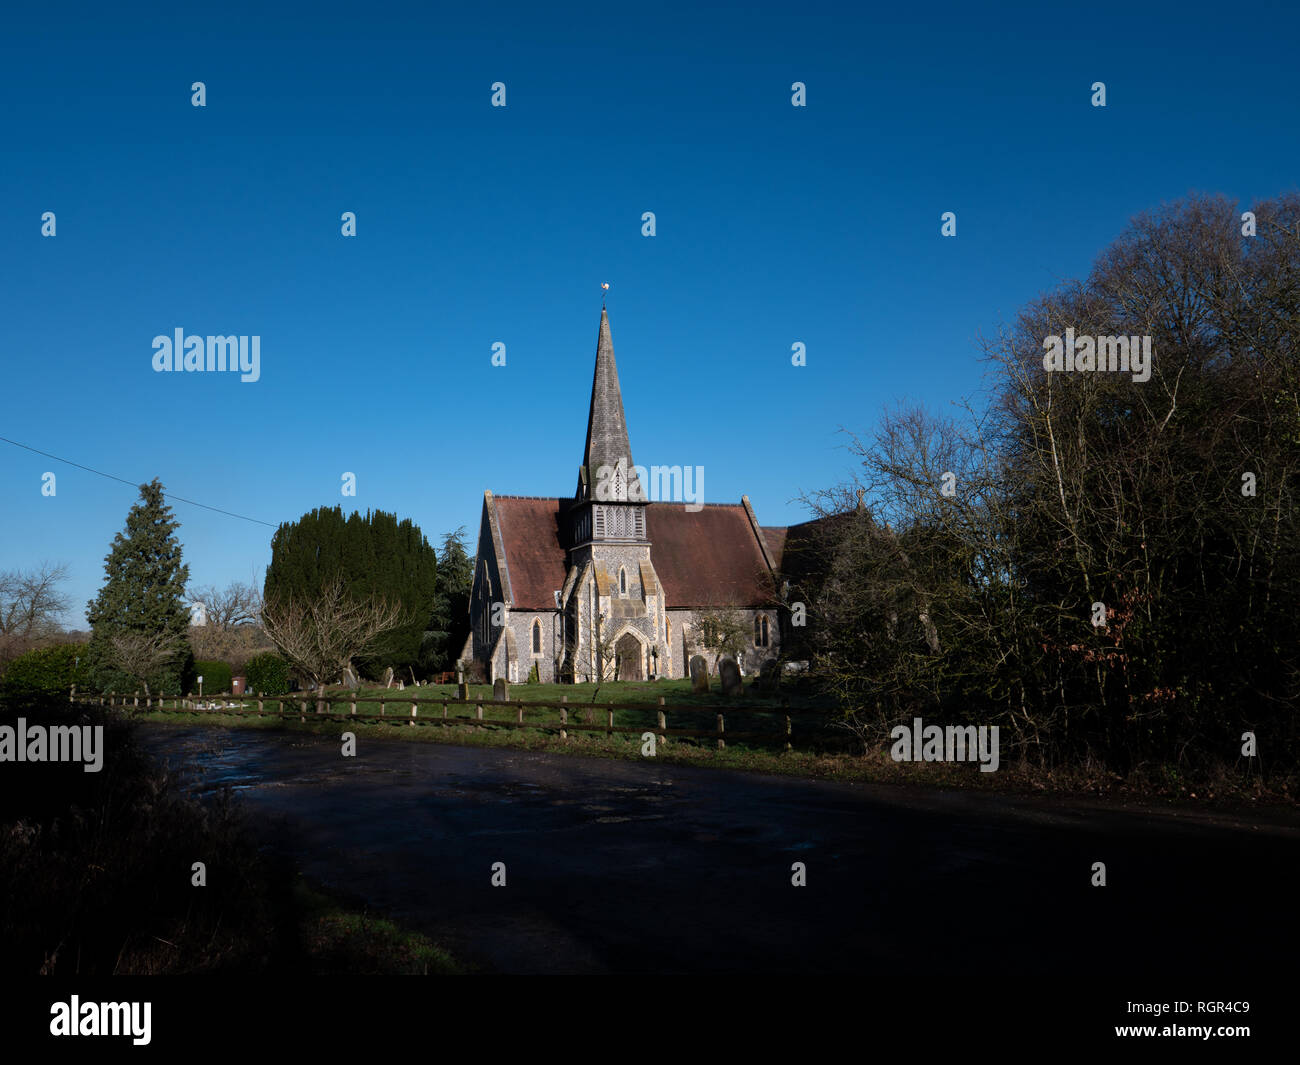 English country church with spire against blue sky. St James Barkham Stock Photo